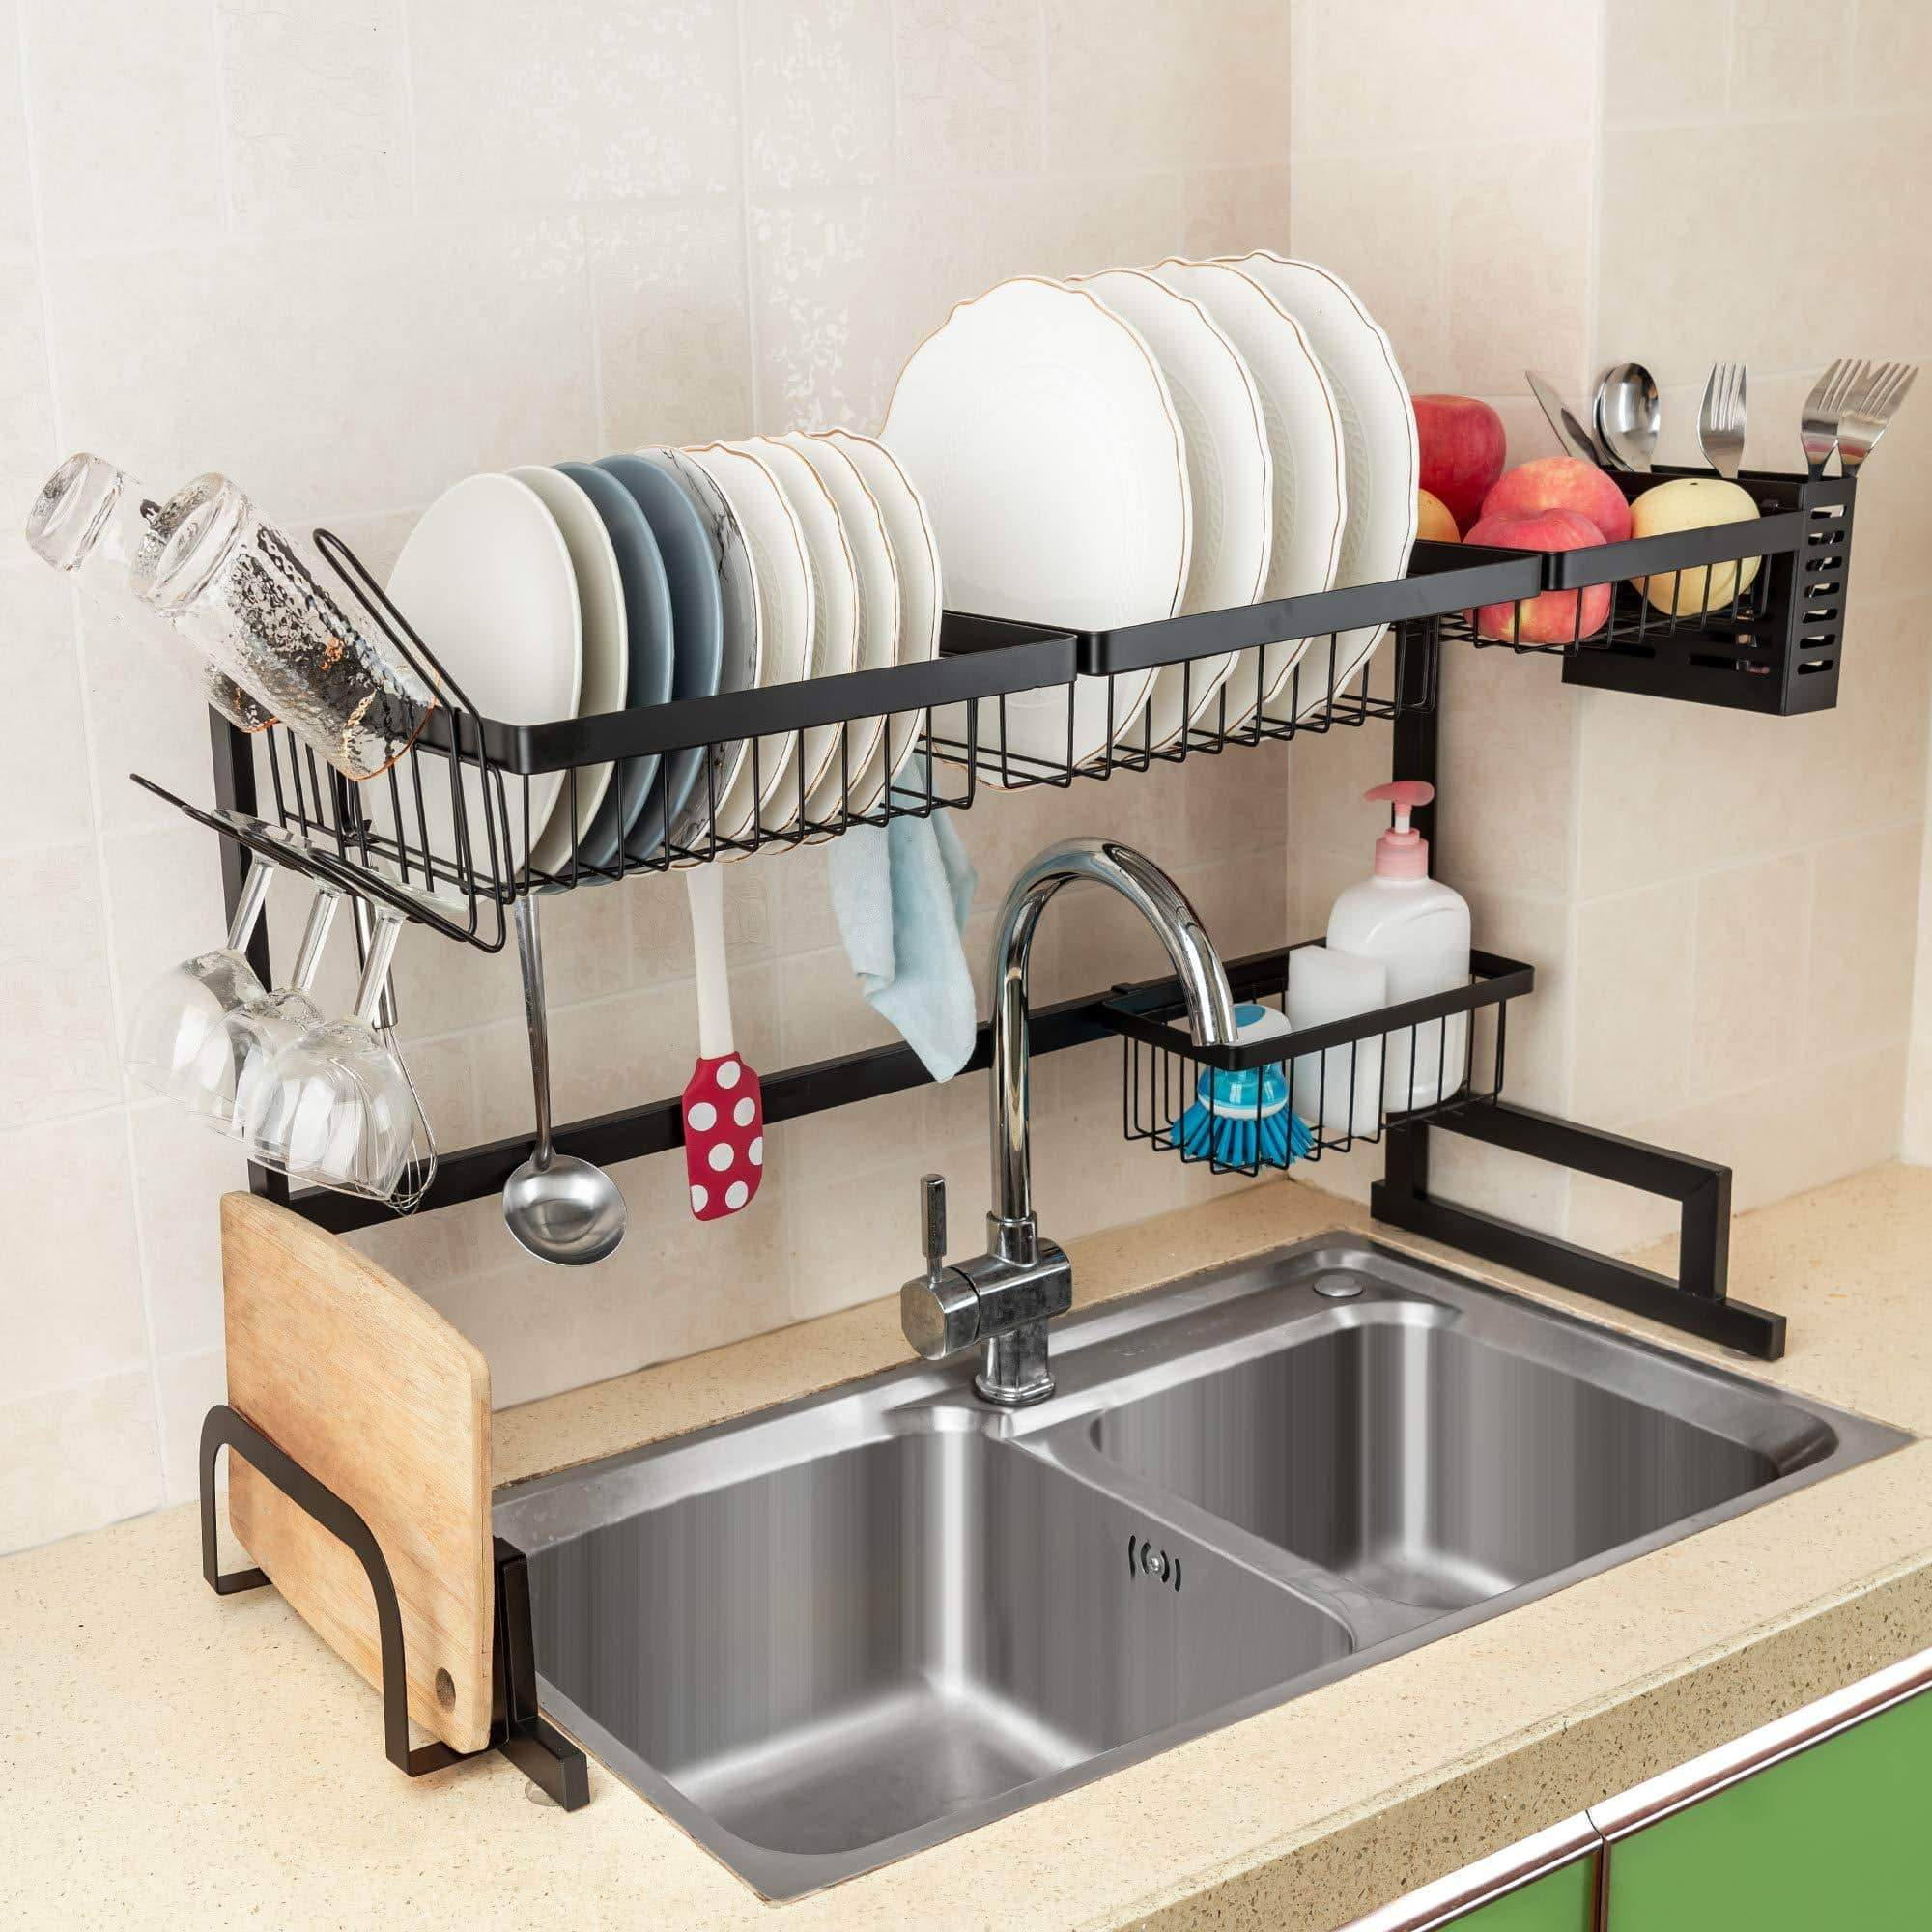 iPEGTOP Over the Sink Stainless Steel Dish Drying Rack - Large Dish Drainers for Kitchen Double Sink, Dishes Utensils Glasses Draining Shelf Storage Counter Organizer Cutlery Holder, Black